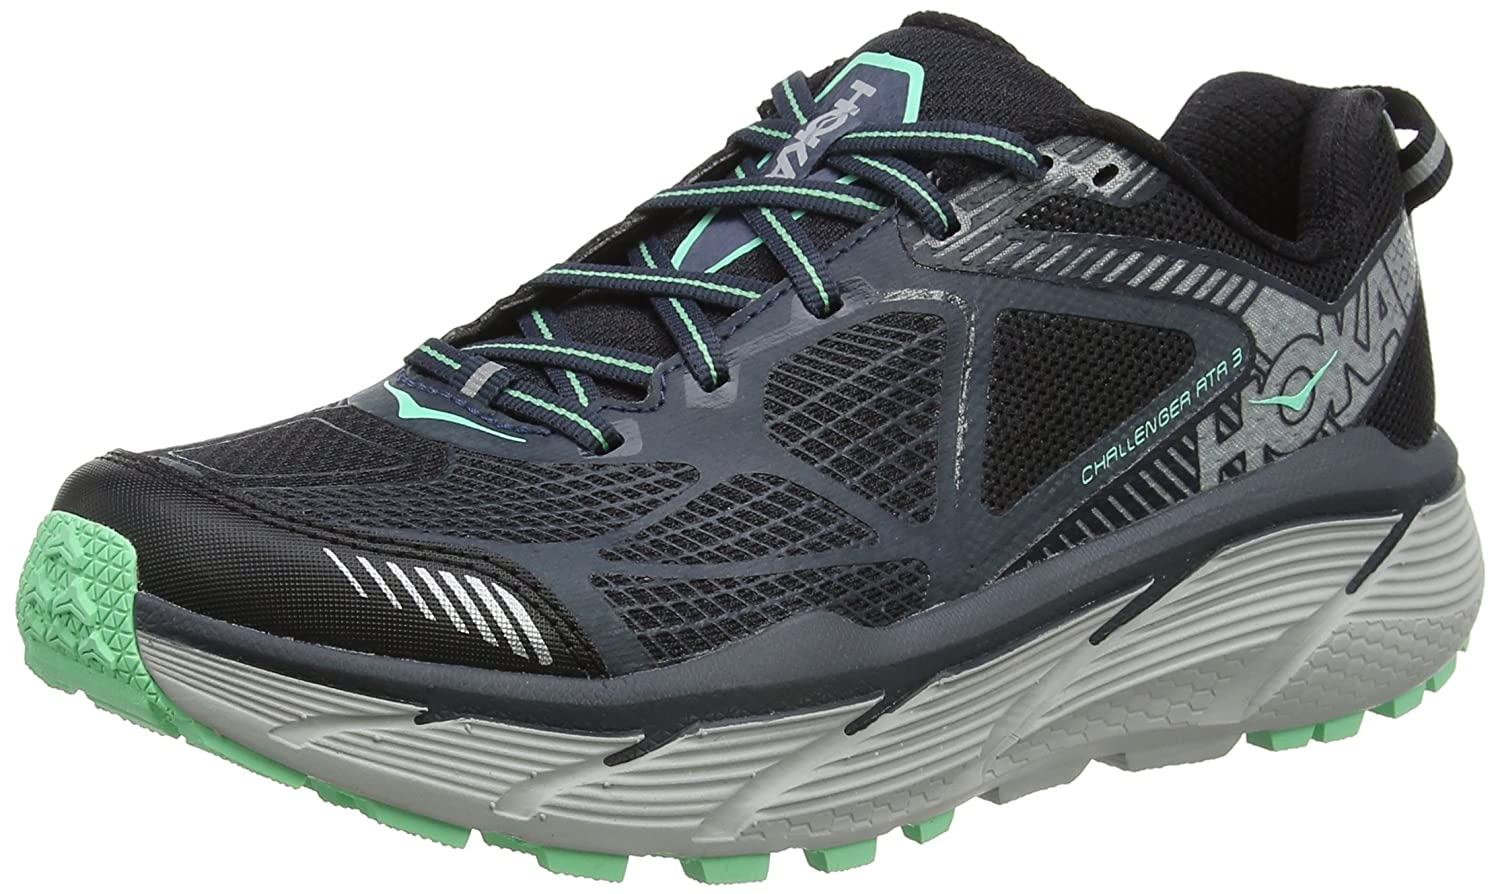 HOKA ONE ONE Women's Challenger ATR 3 Shoe B01H6A7FJK 8.5 B(M) US|Midnight Navy